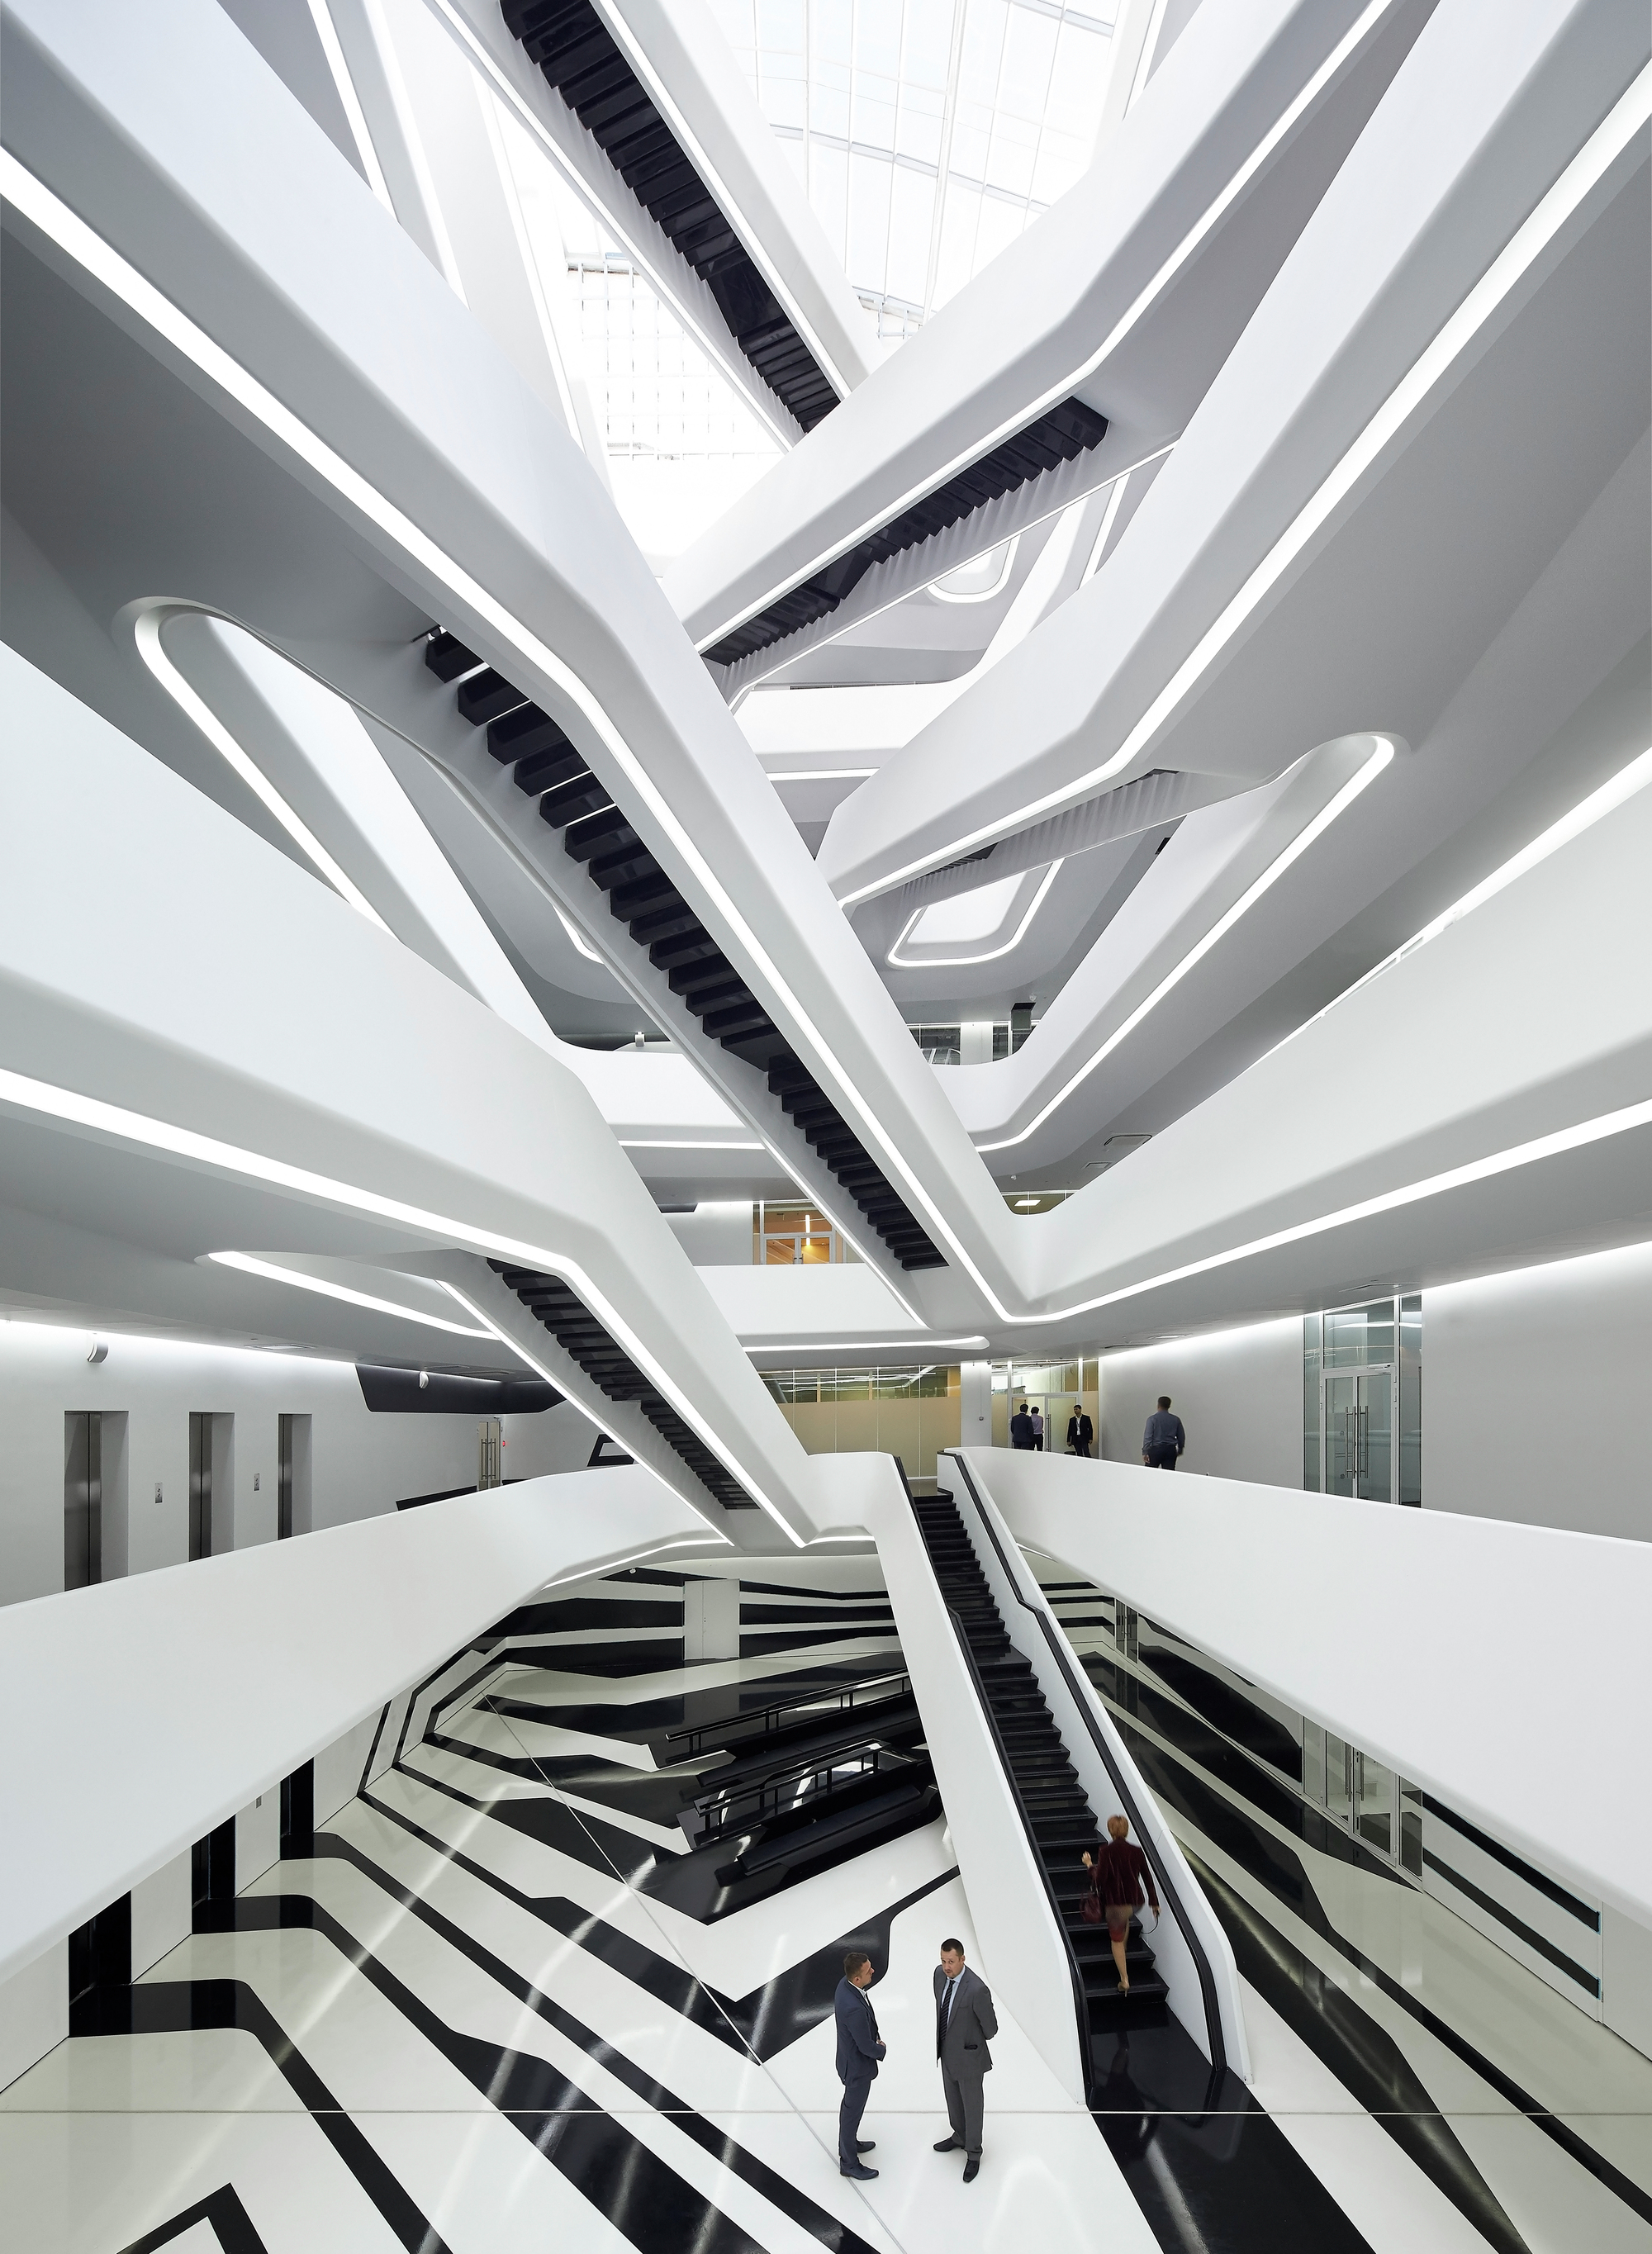 Edificio de oficinas dominion zaha hadid architects for Arquitectura zaha hadid